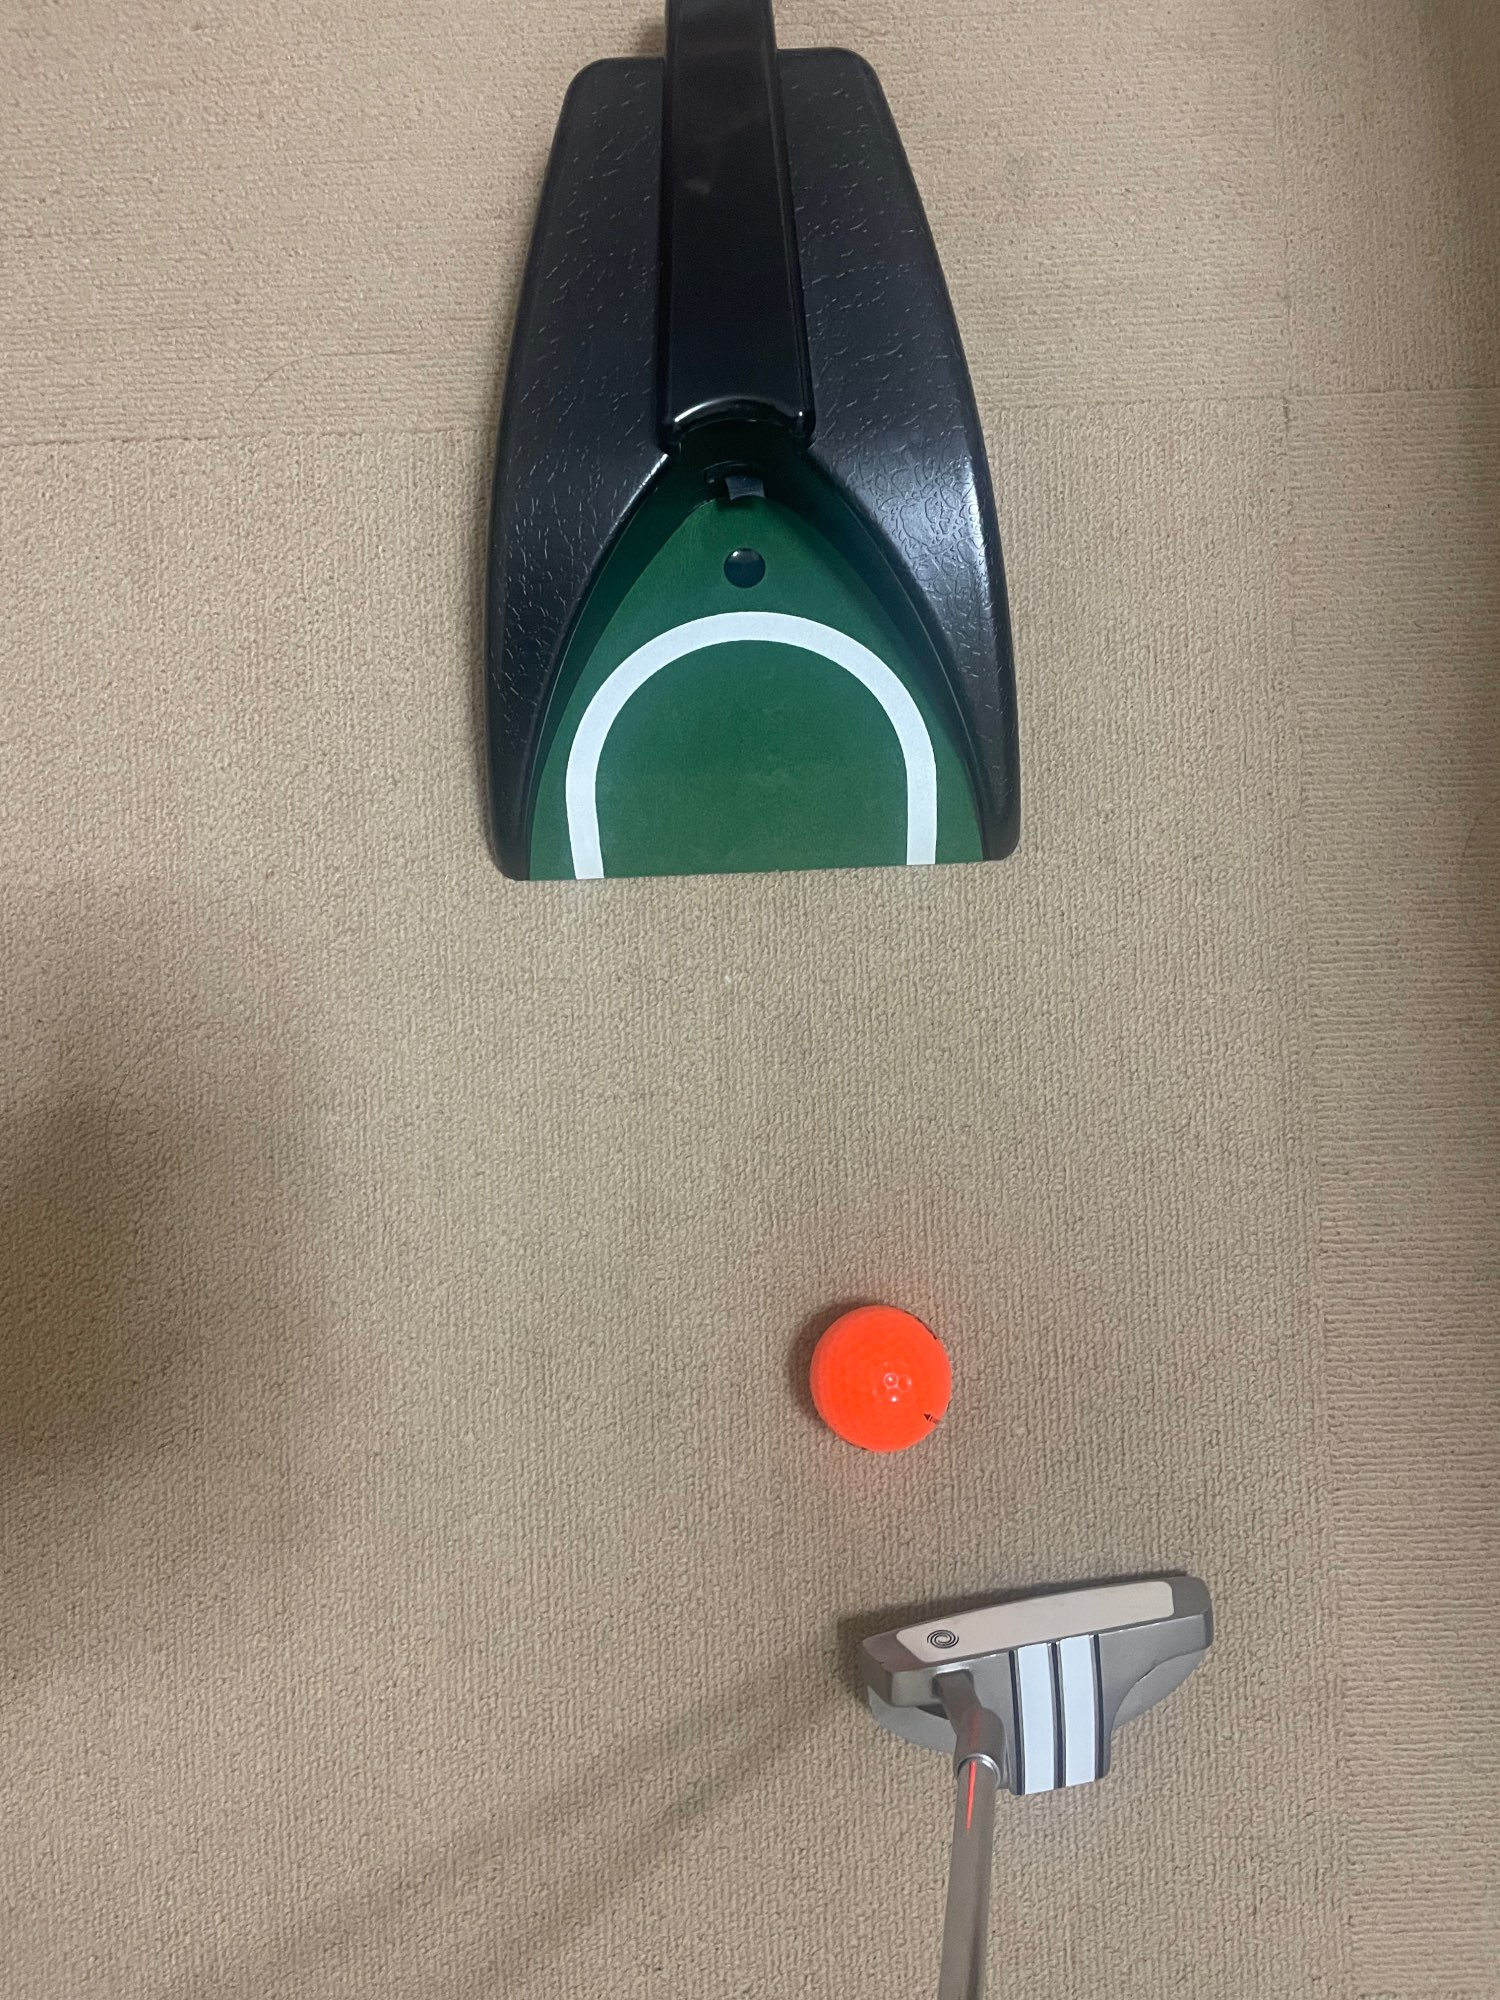 Automatic Golf Ball Return photo review